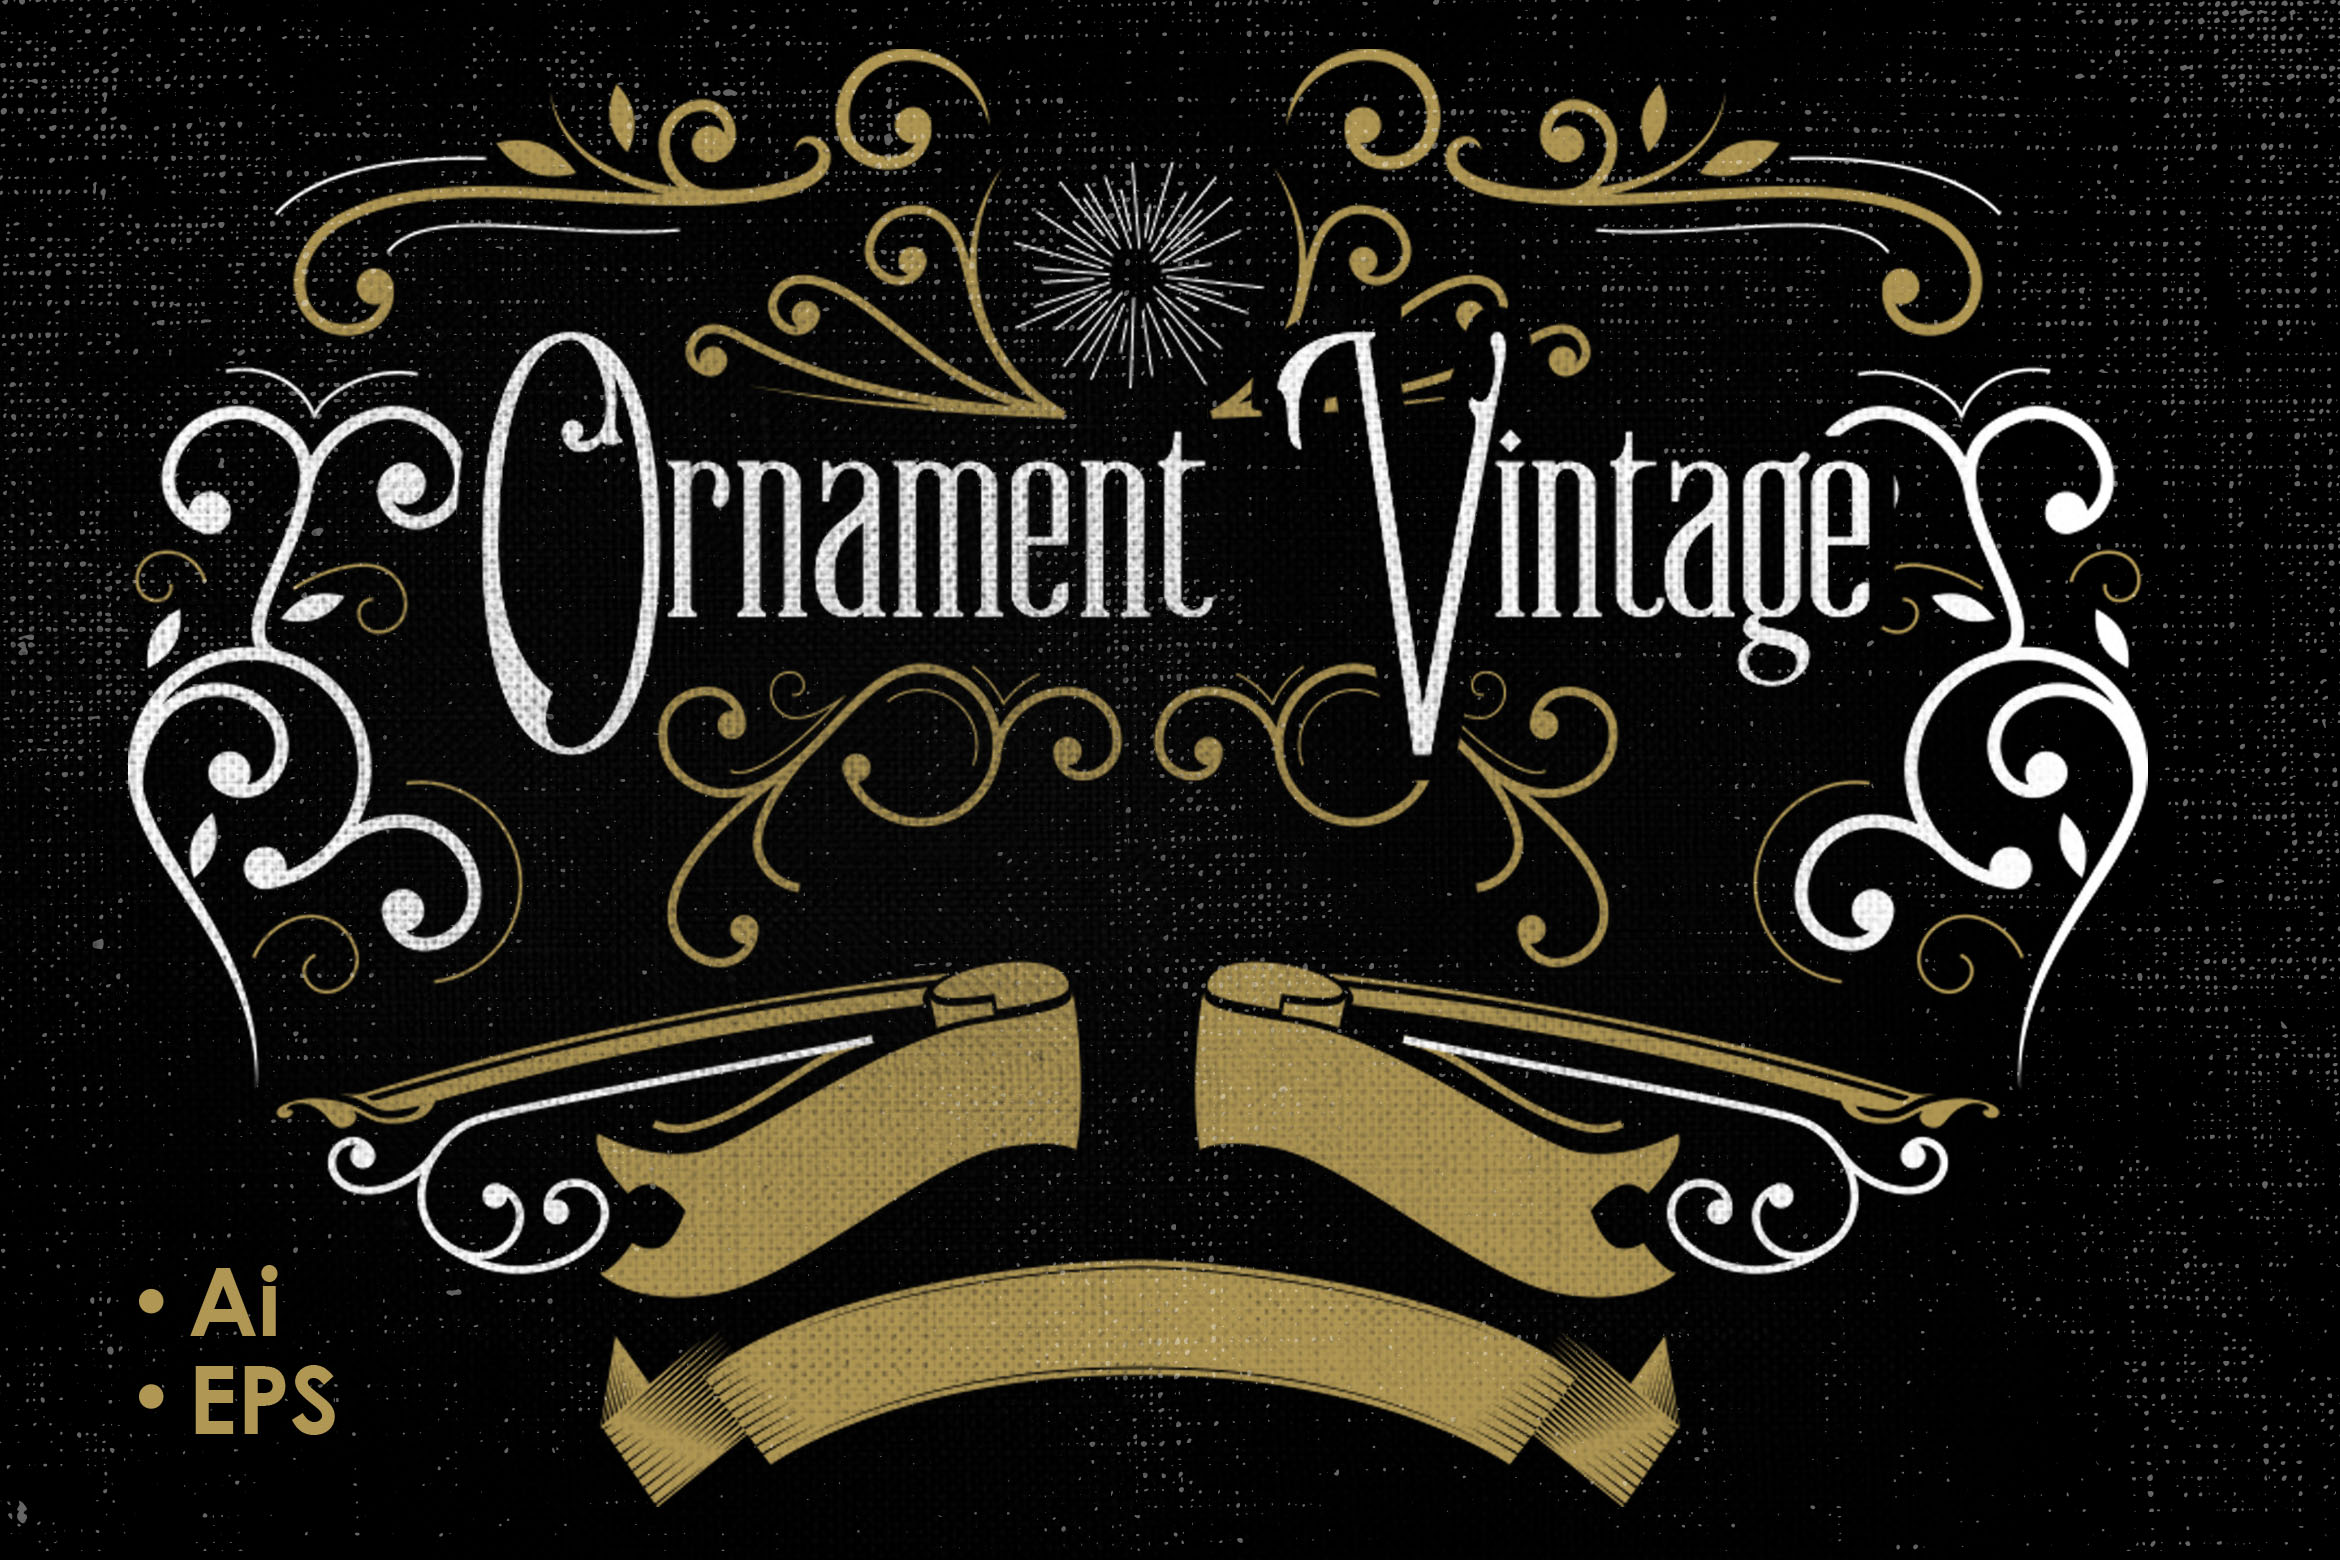 Vintage Vector Ornaments Graphic Objects By storictype